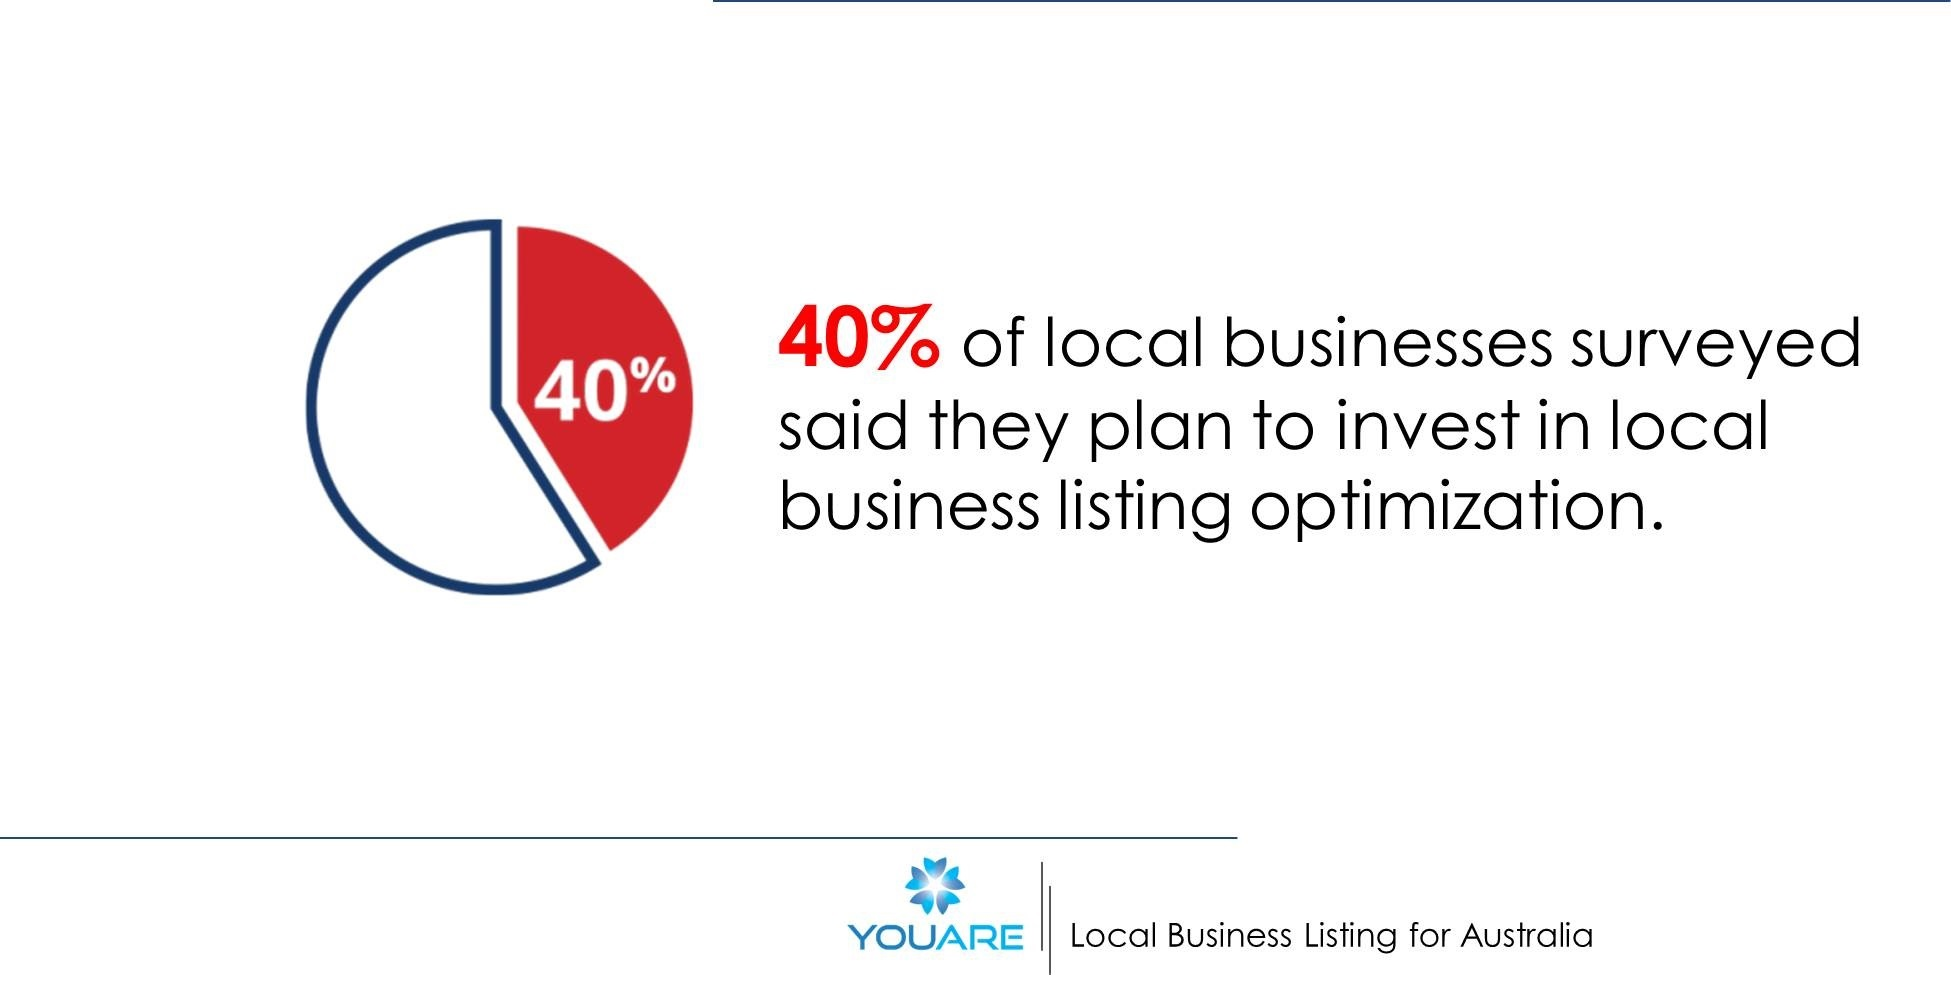 40% of local business